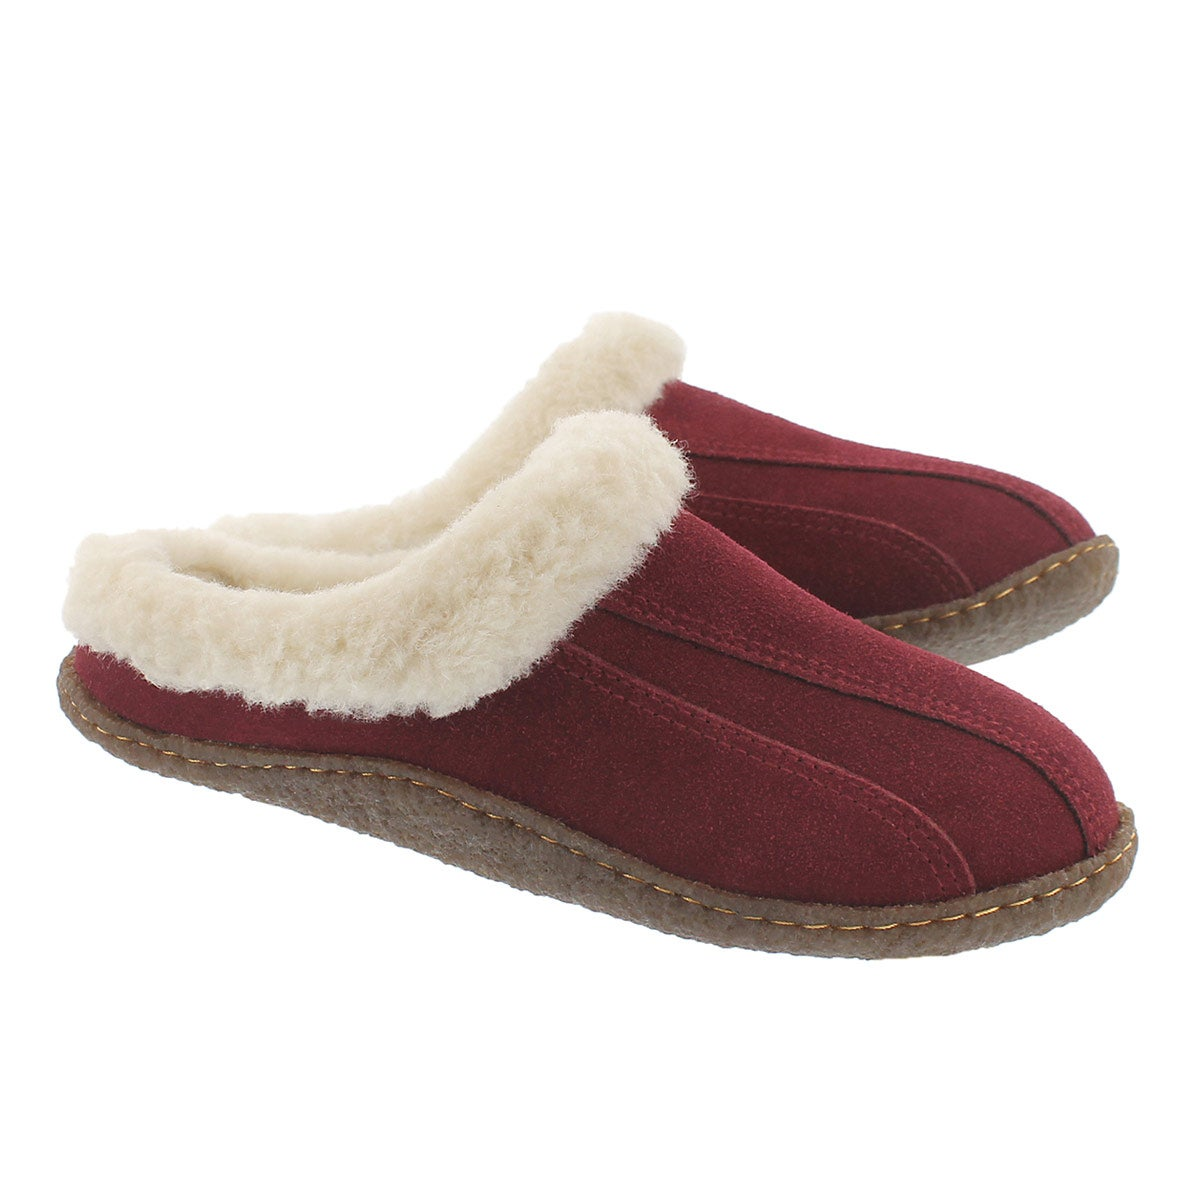 Lds Galaxie III brgndy open back slipper